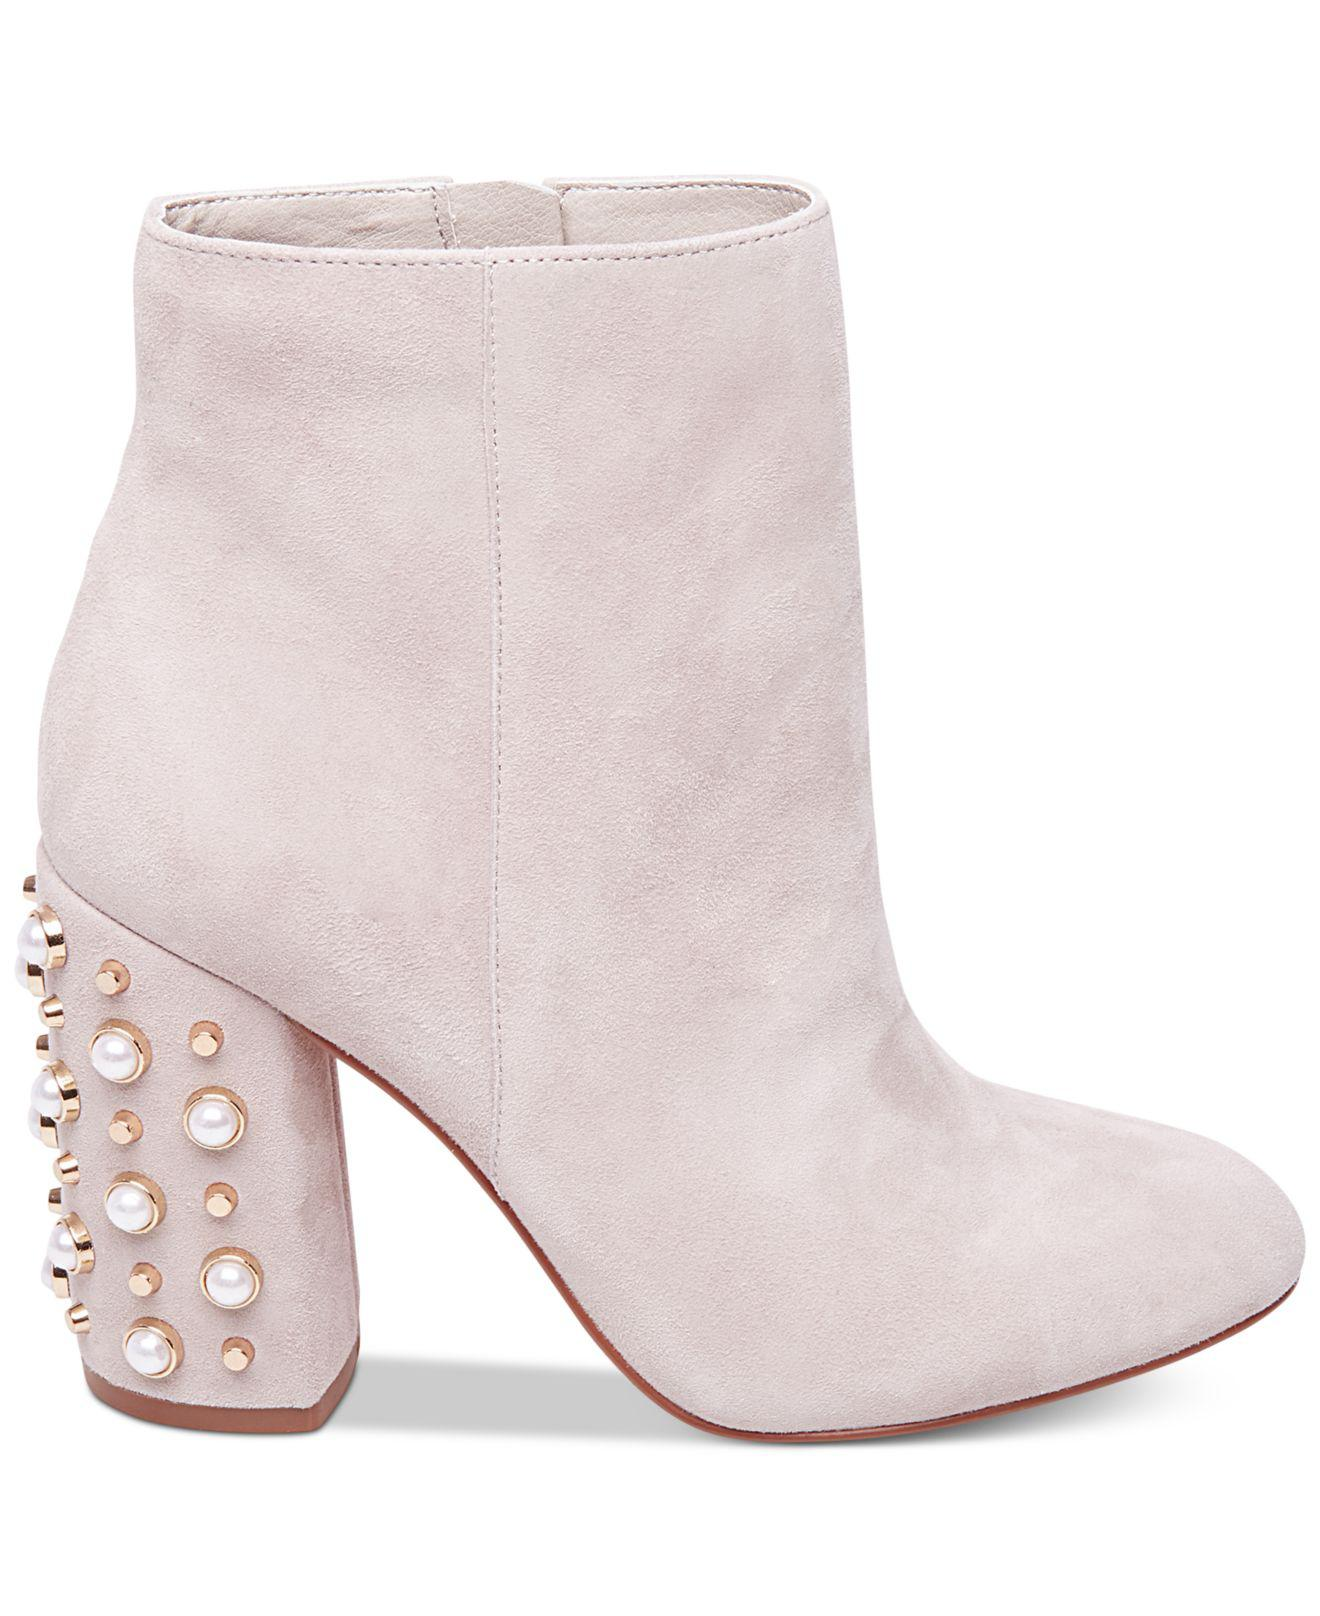 2945ddb1514 Lyst - Steve Madden Yvette Studded Booties in Pink